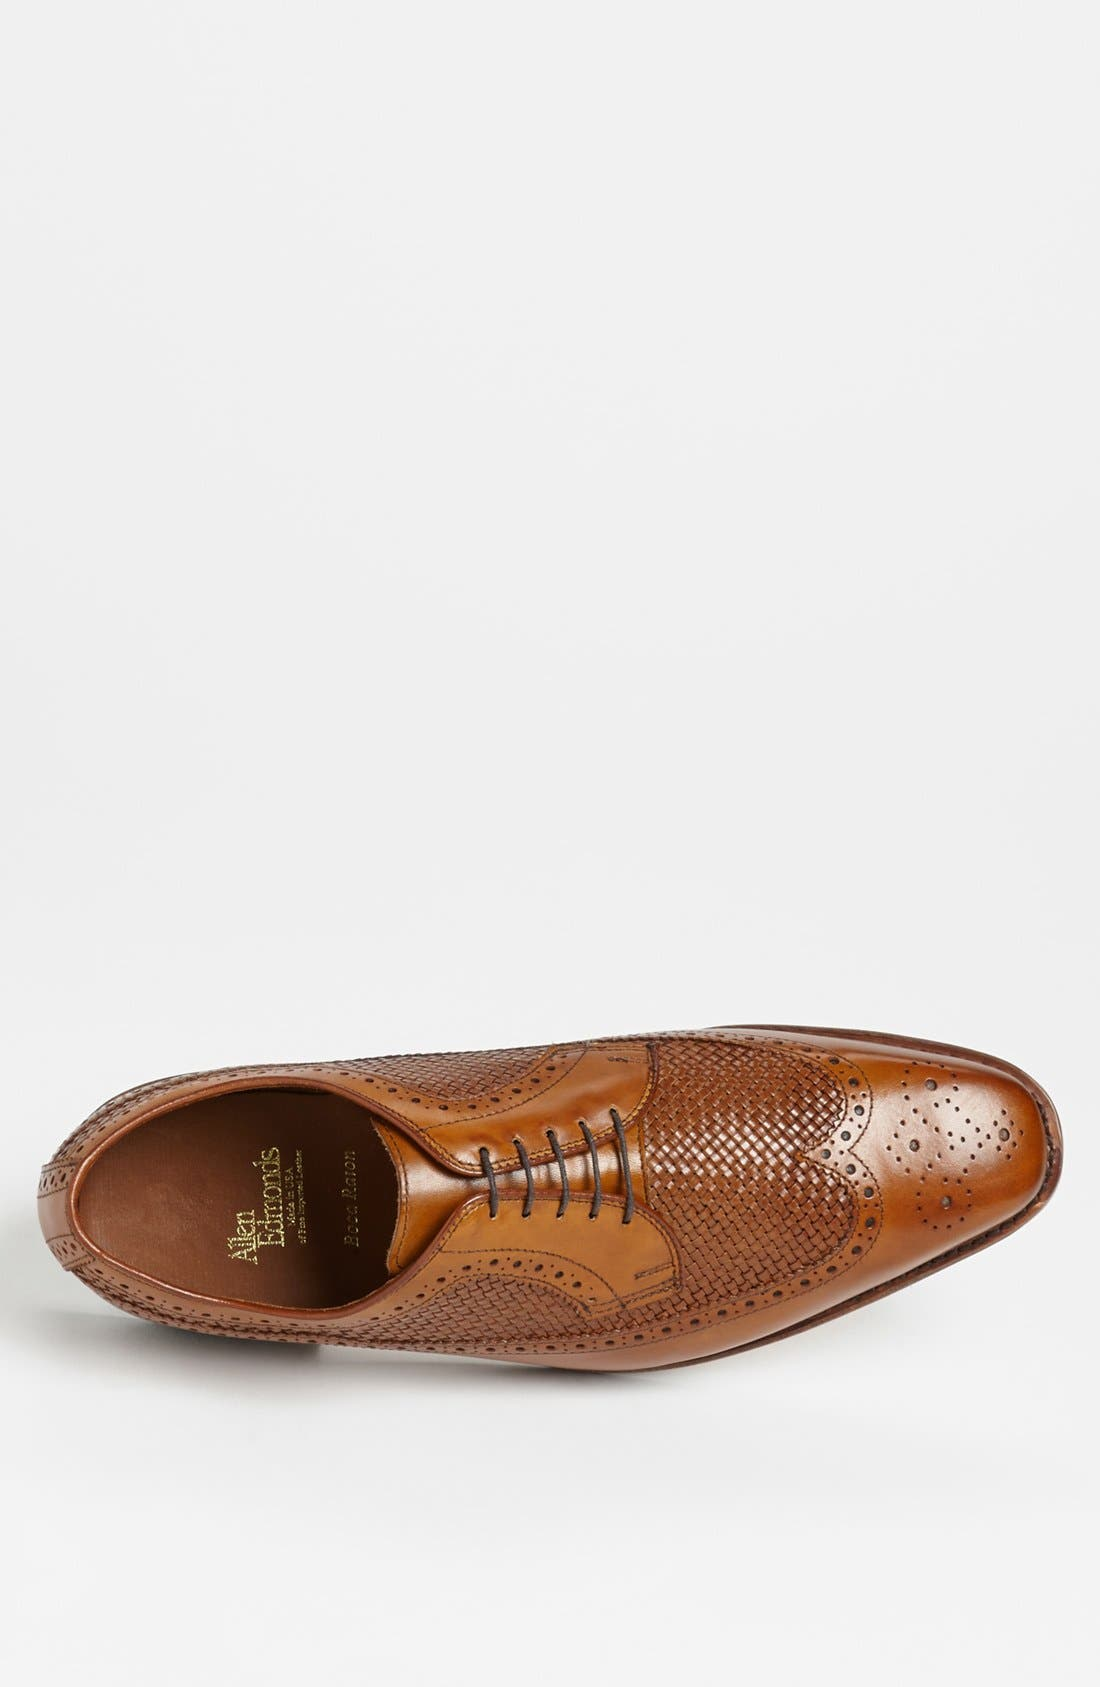 ALLEN EDMONDS,                             'Boca Raton' Longwing,                             Alternate thumbnail 4, color,                             210